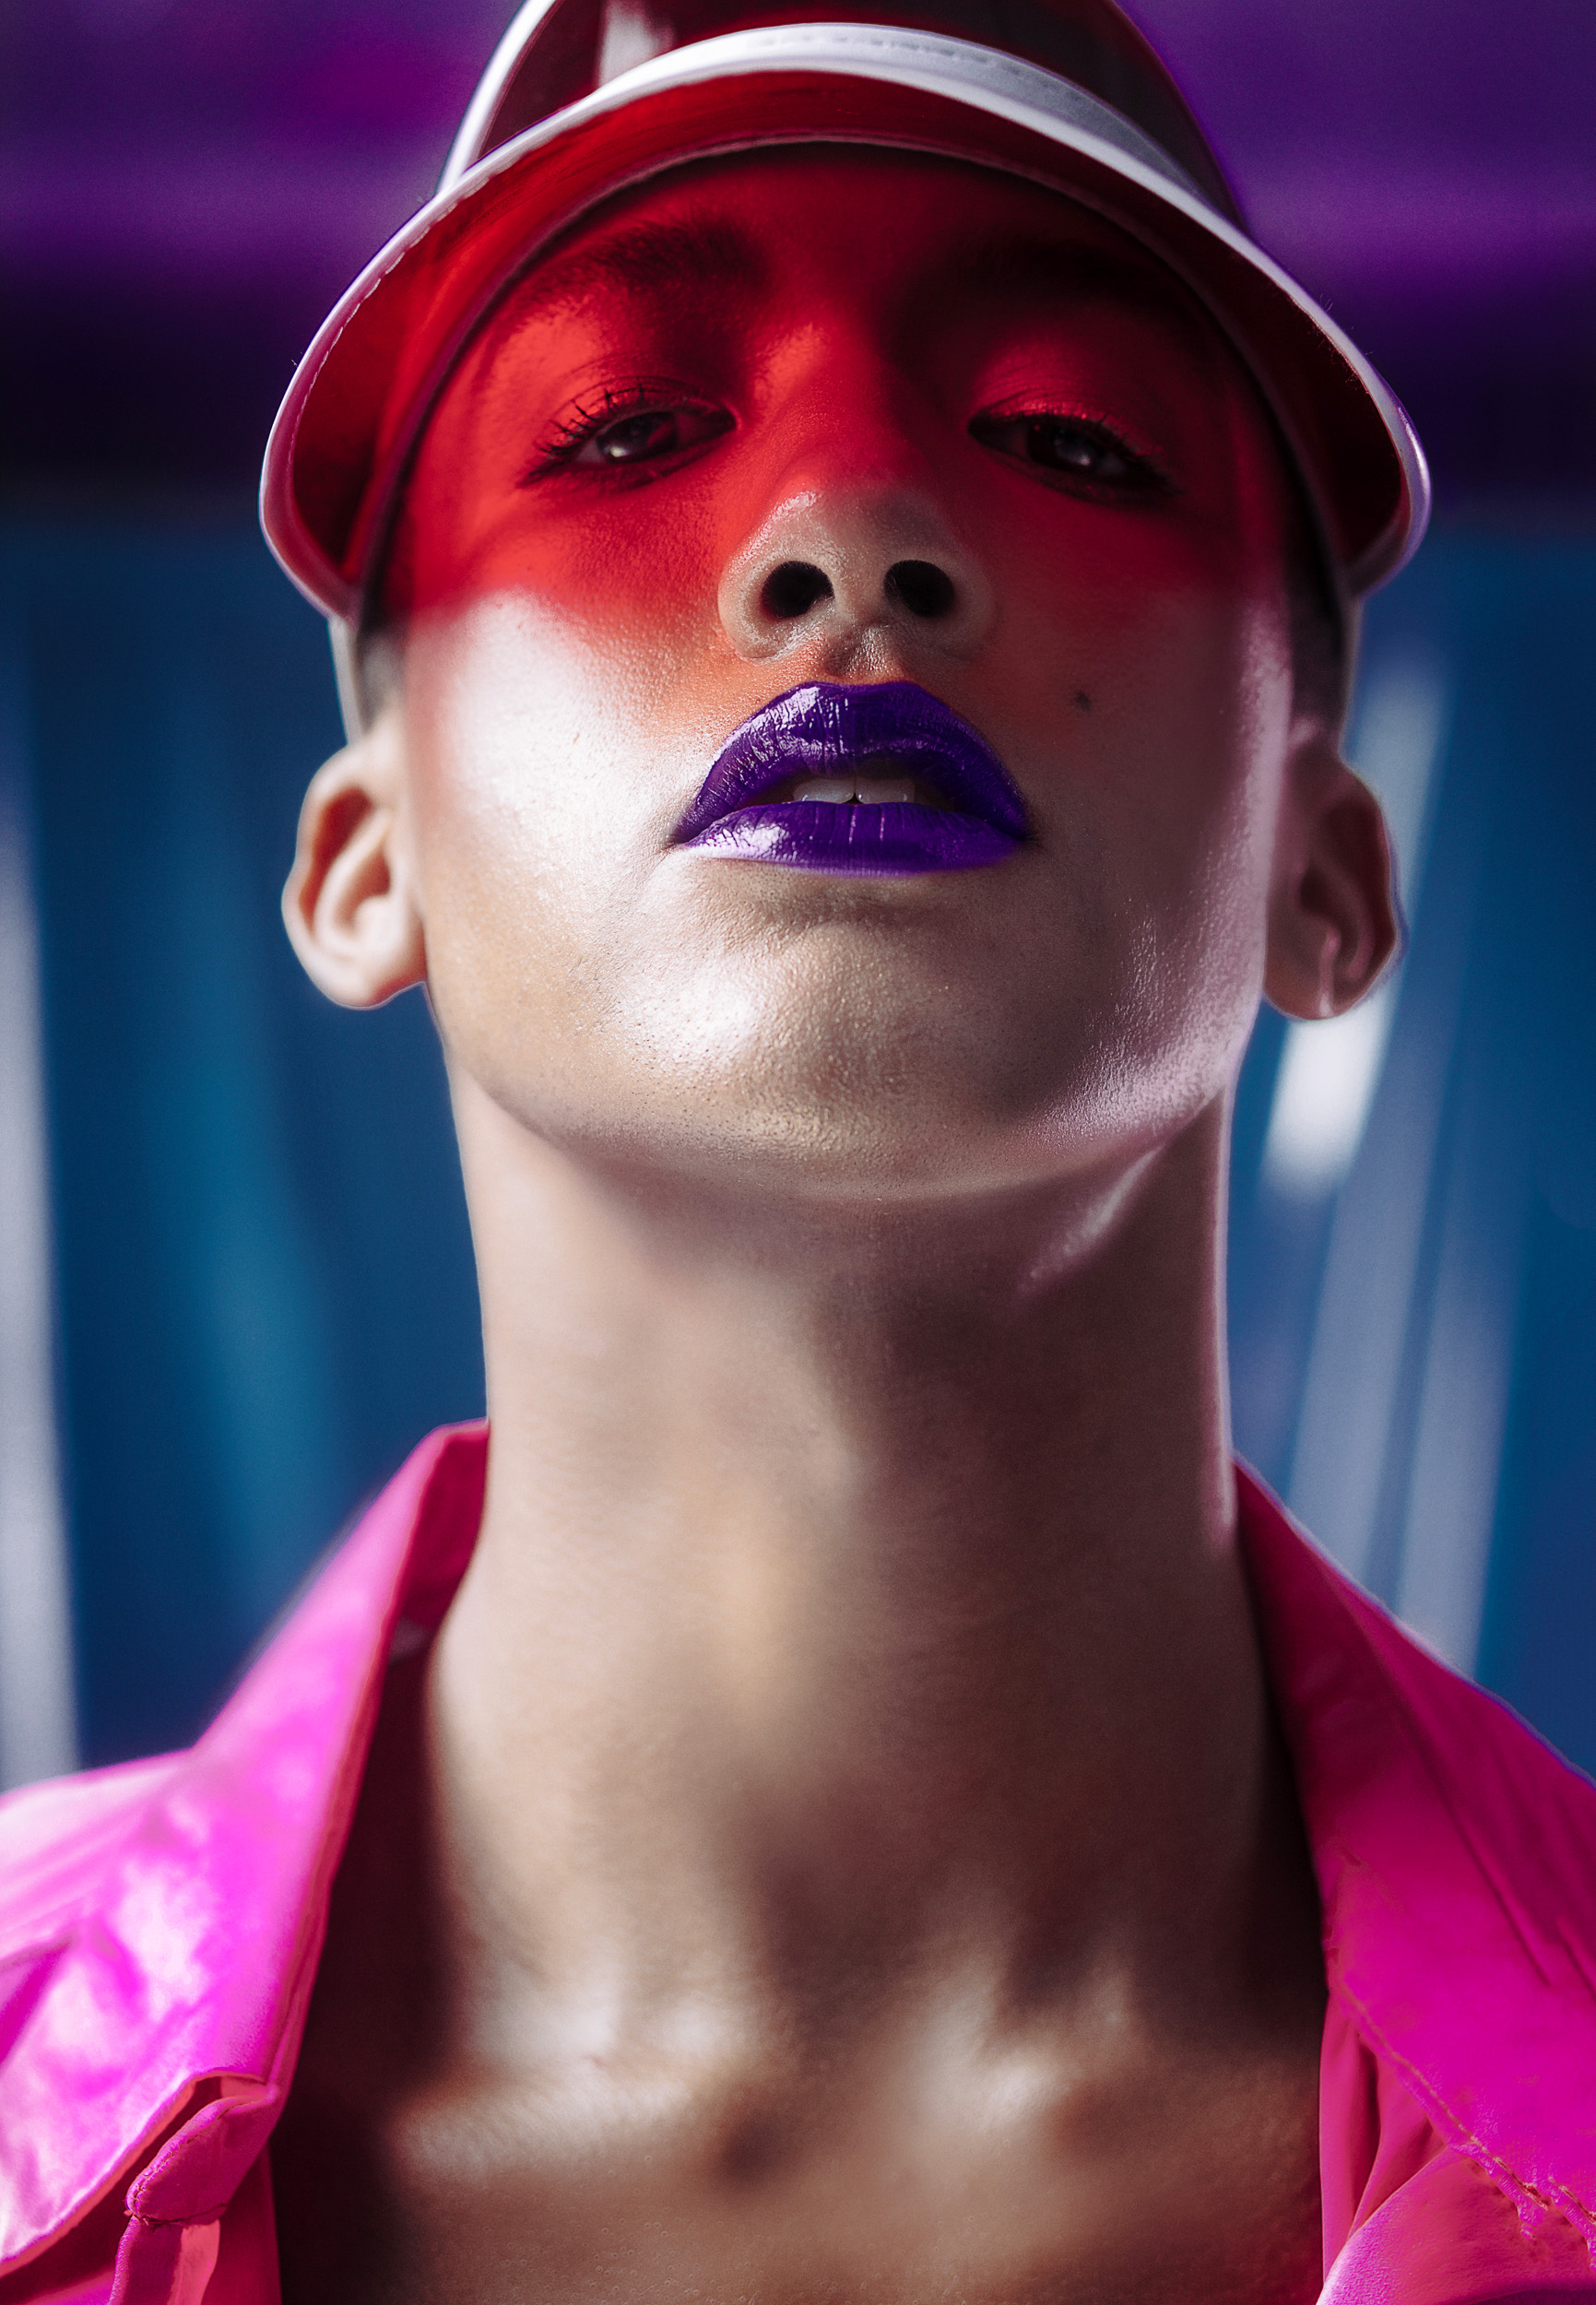 Makeup artist Mark de los Reyes achieved Watters' deep purple lip with Maybelline's  Color Sensational Vivid Matte Liquid Lipstick in Wicked Berry  ($7.99). Visor stylist's own.   IN THIS STORY: Photographed by    Minü Han    Styling    Sean Santiago    HMU    Mark de los Reyes    All clothing    Christopher John Rogers    Assistants Noah Jackson, Colin Laidley and Justin Viera. Interview text by Sean Santiago and Colin Laidley, edited and condensed for clarity.